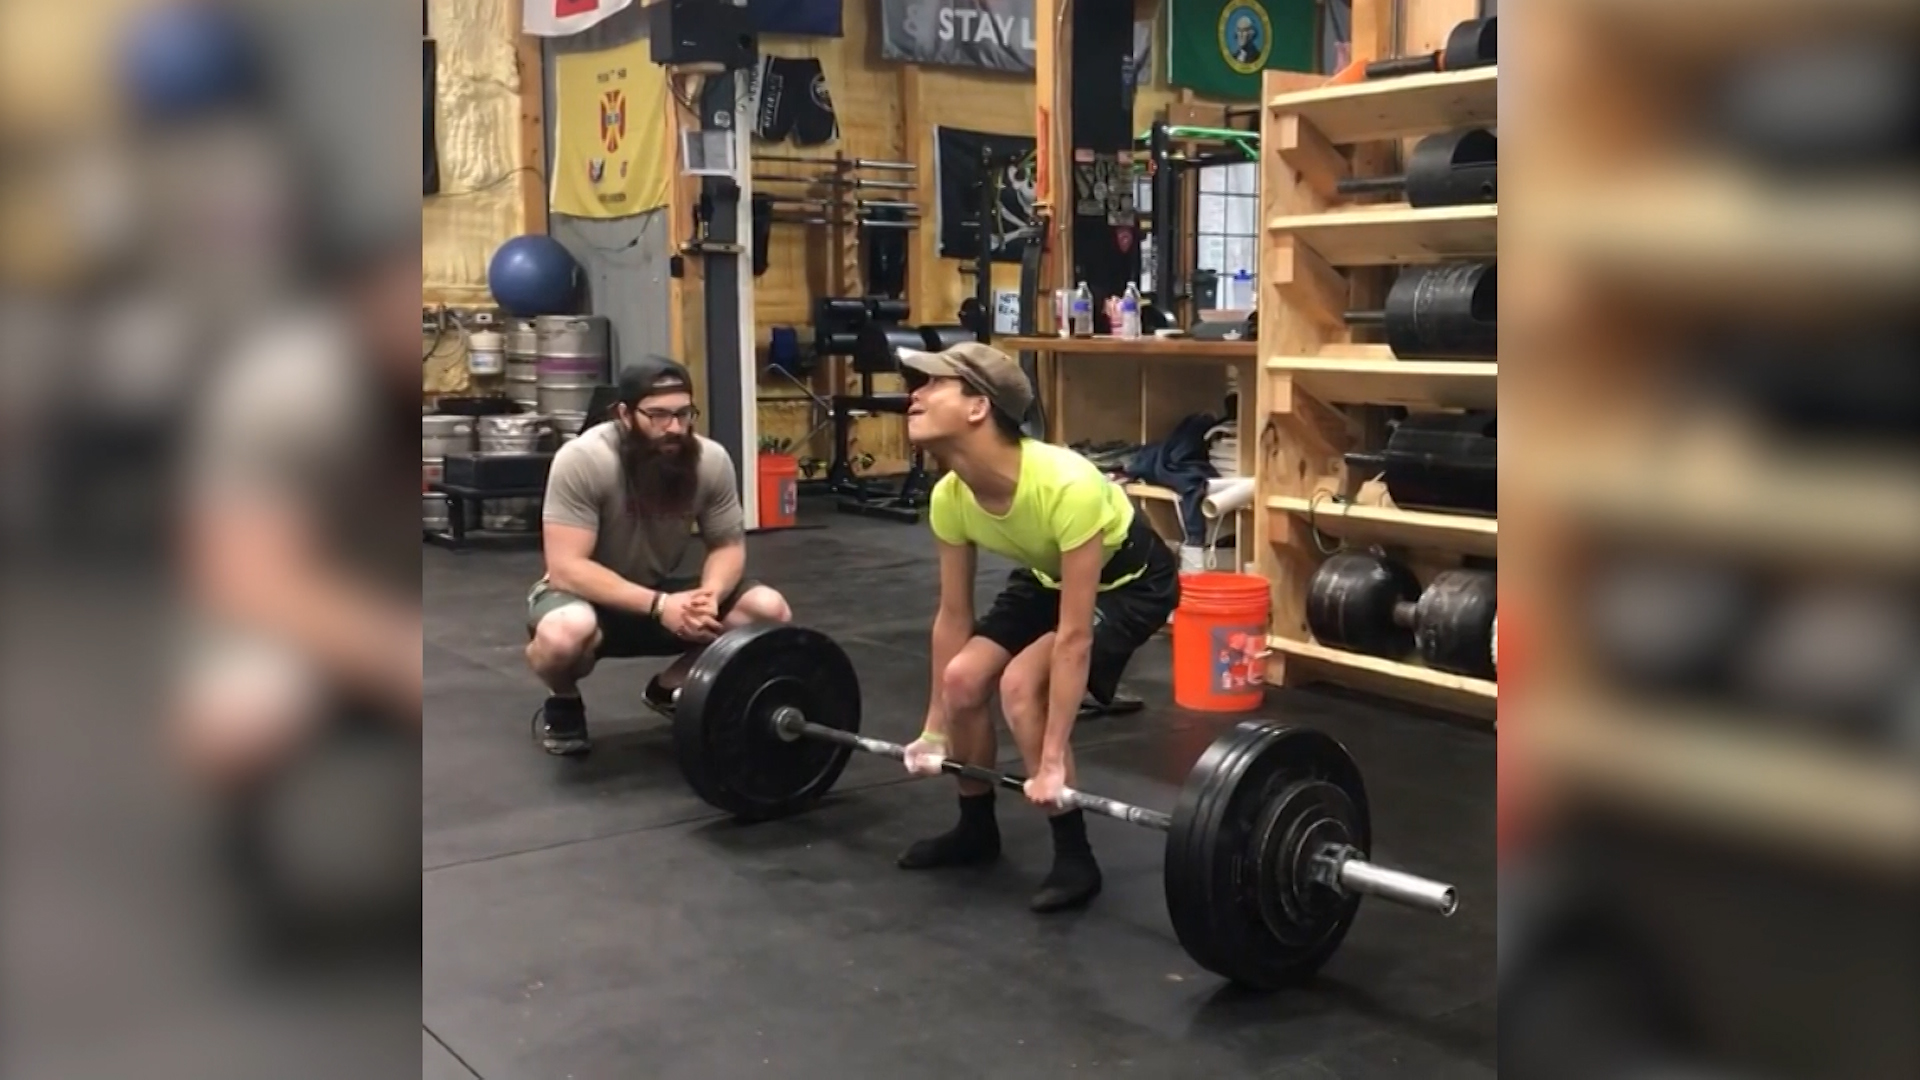 See athlete with cerebral palsy deadlift 200 pounds - CNN Video